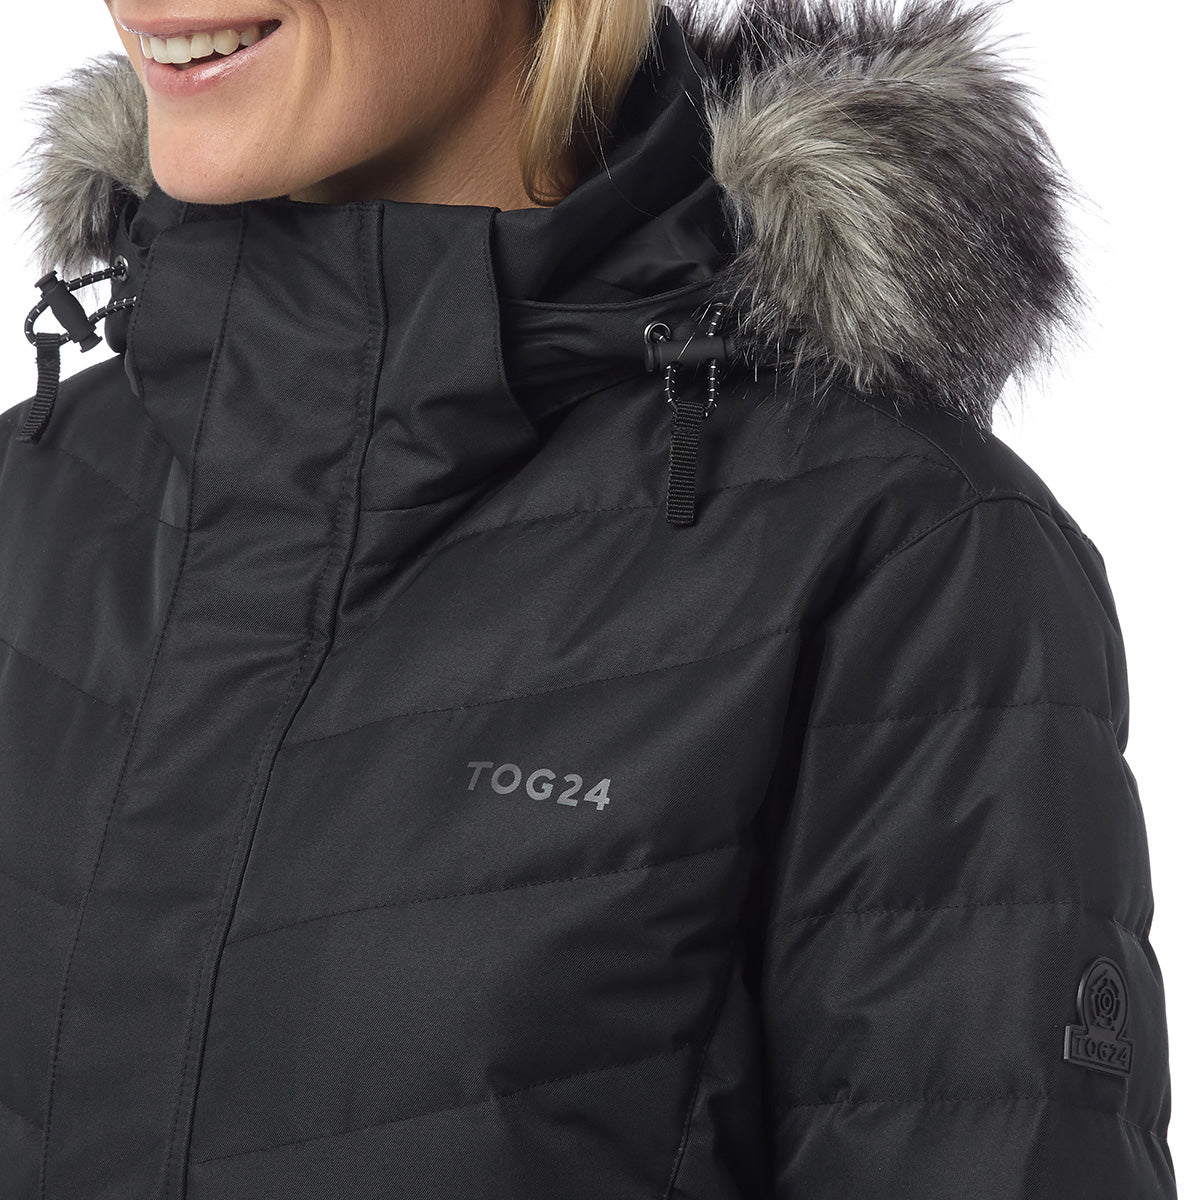 Kirby Womens Down Filled Ski Jacket - Black image 4